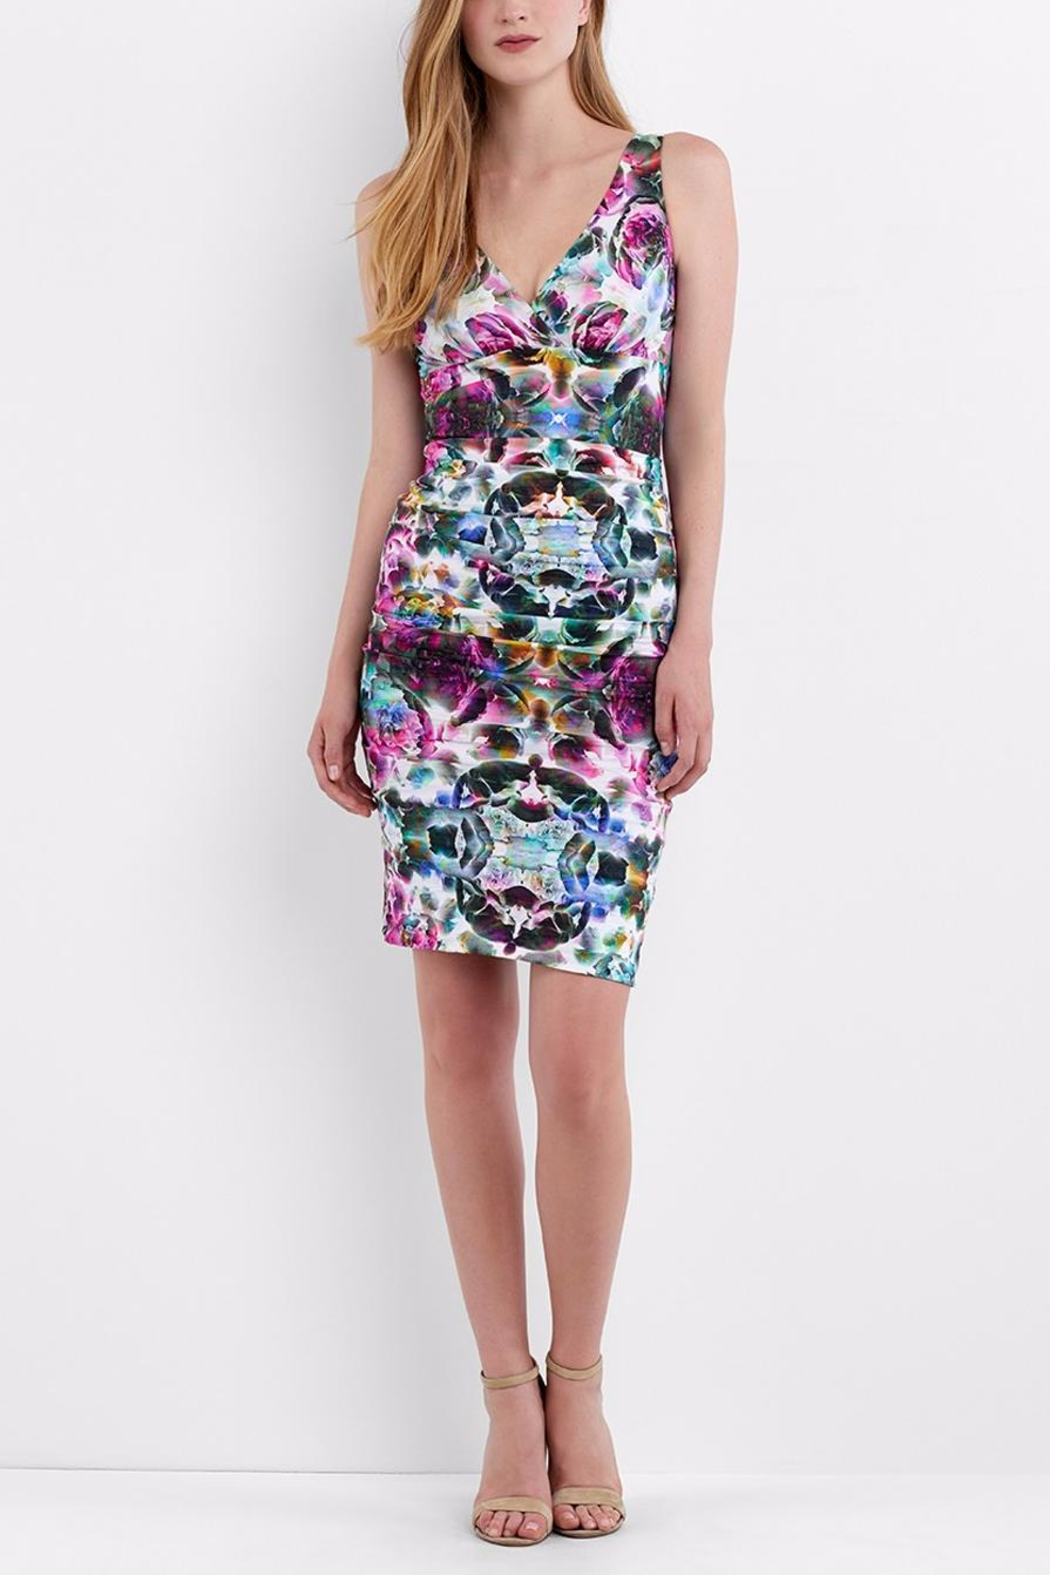 Artelier Nicole MIller Krista Fitted Dress - Main Image